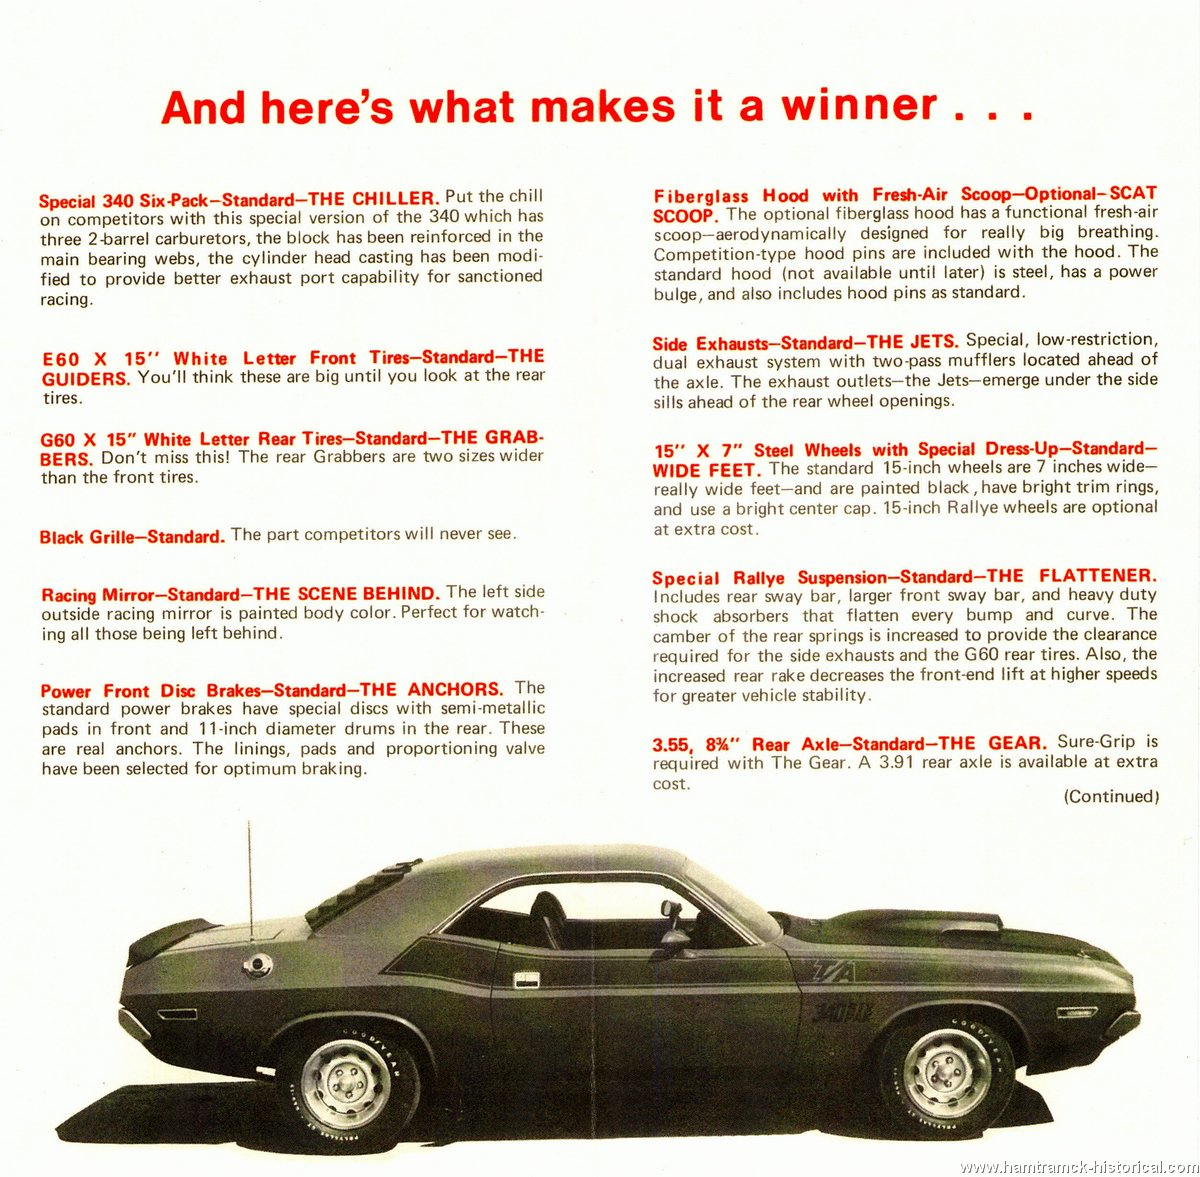 The 1970 Hamtramck Registry - 1970 Challenger T/A and AAR Vintage